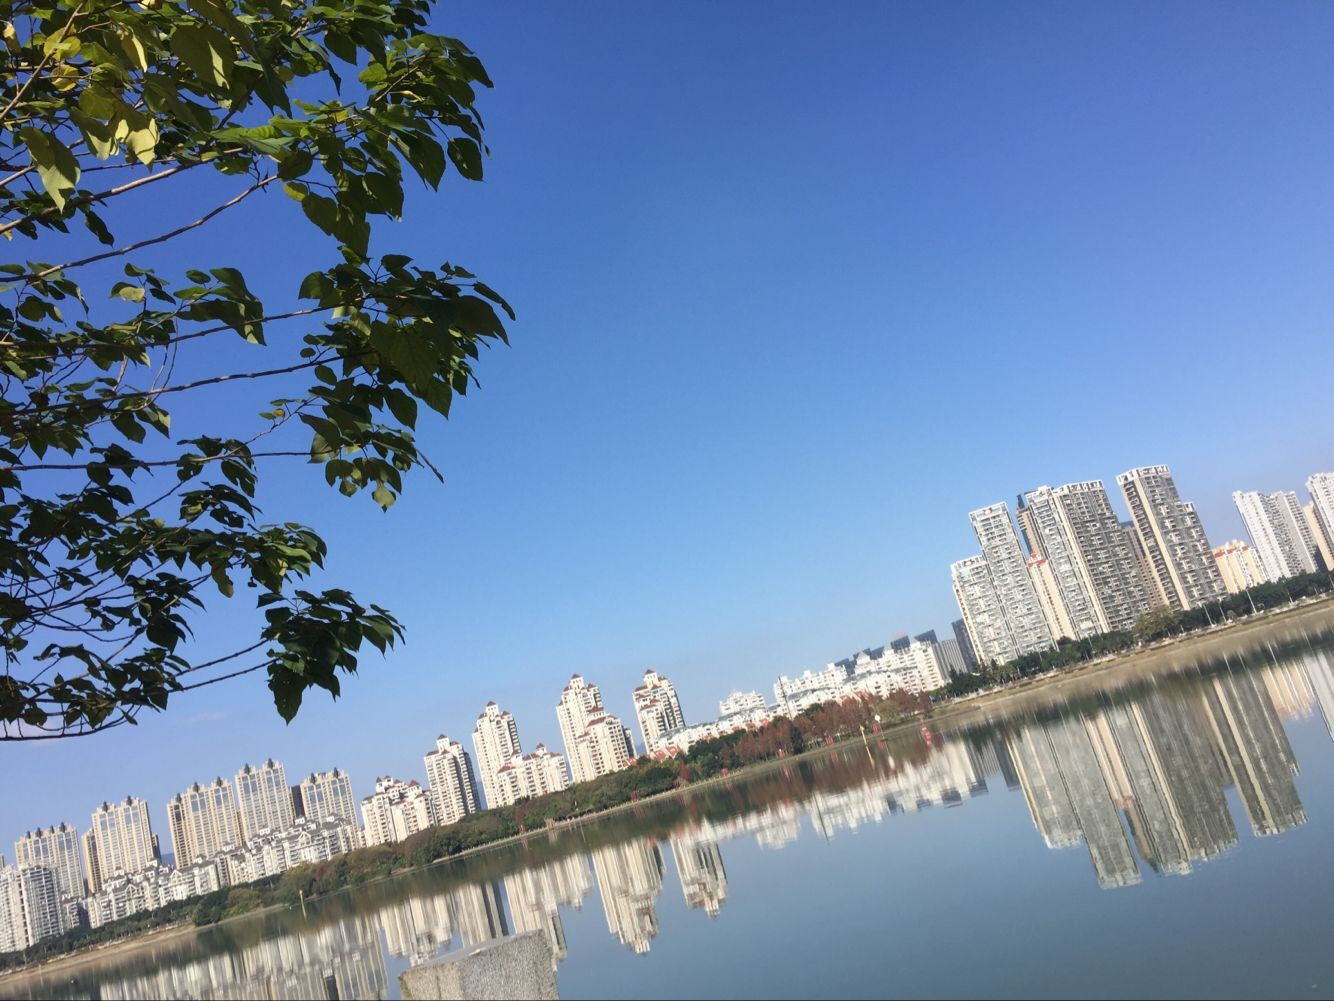 This is our city Fuzhou